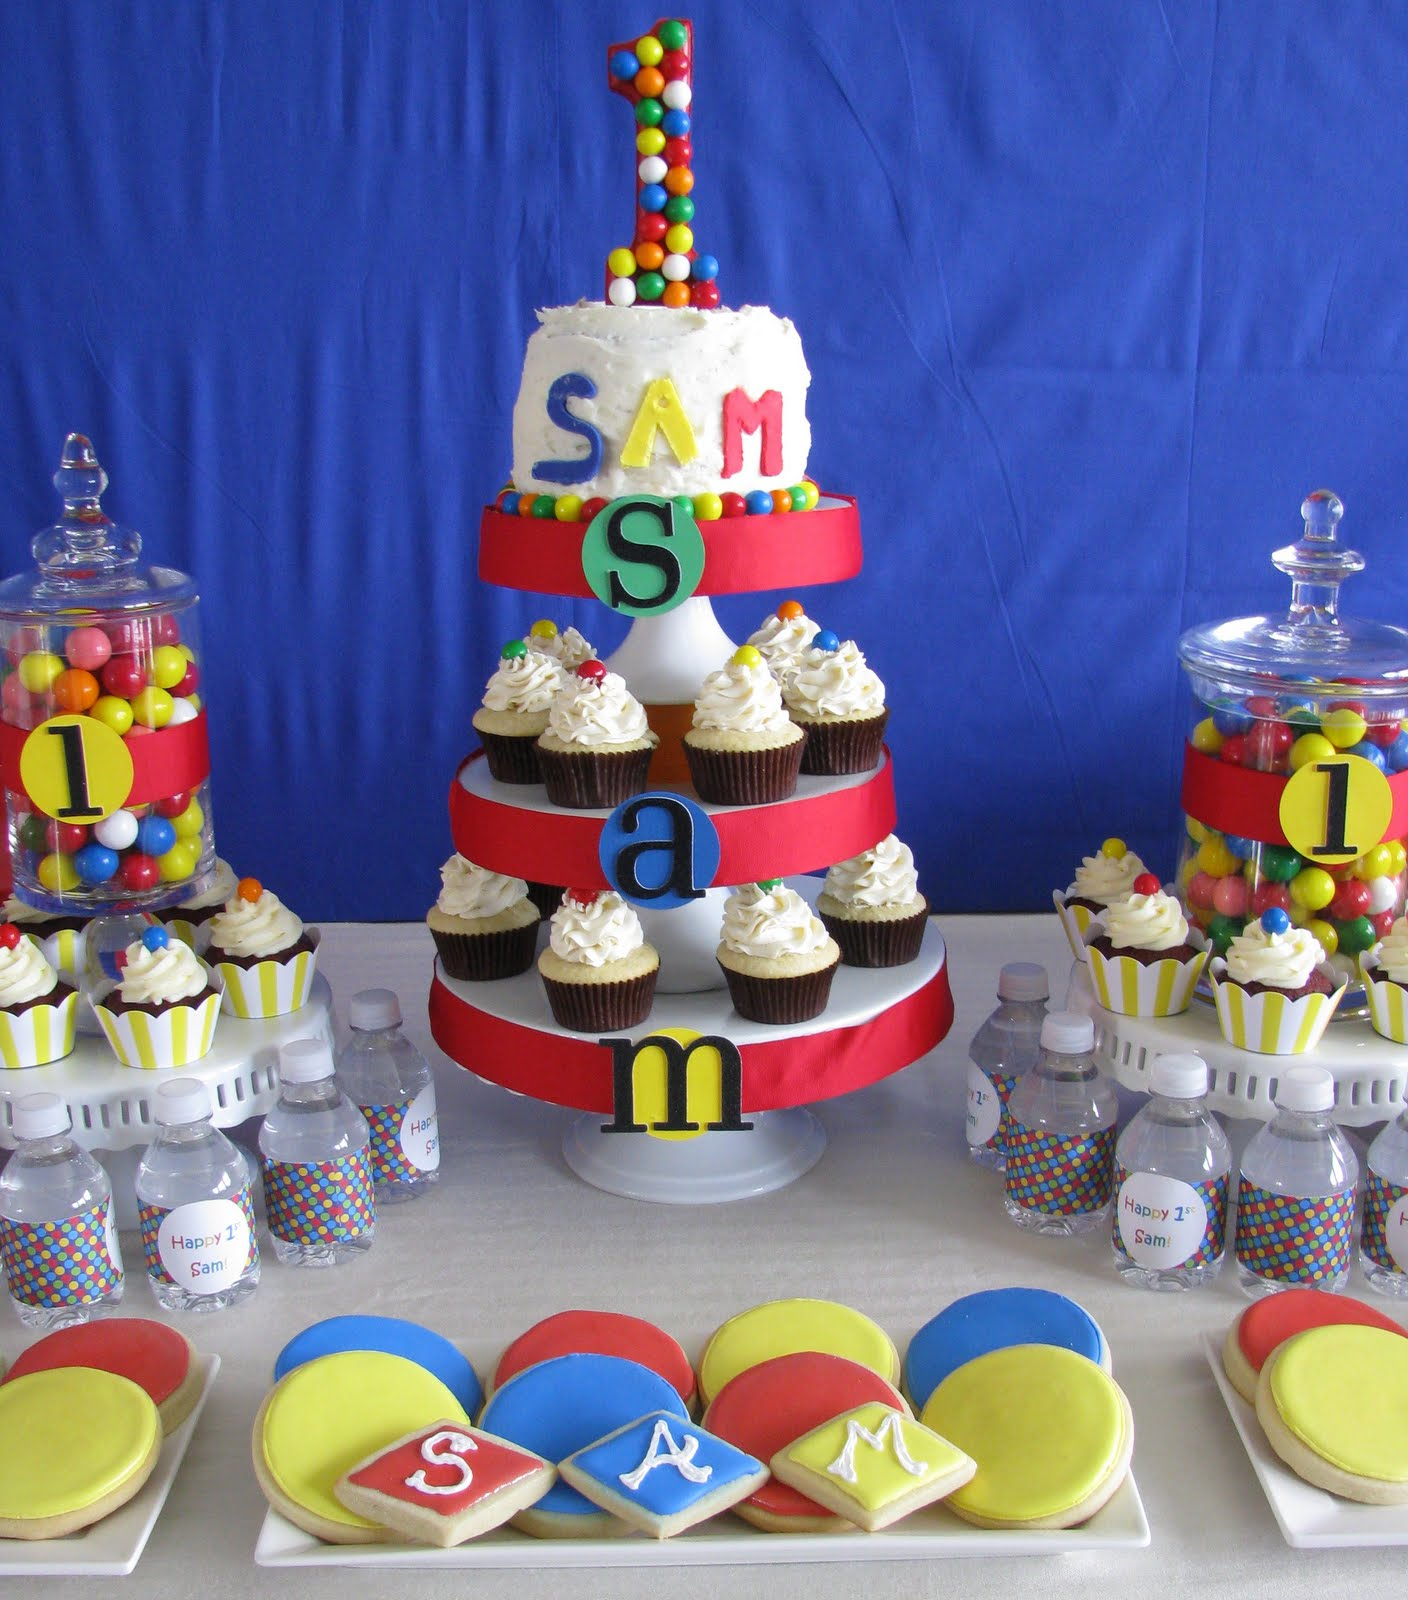 The Best Party Games For Baby S First Birthday: Sheek Shindigs: A Bouncing Baby Boy's 1st Birthday Celebration